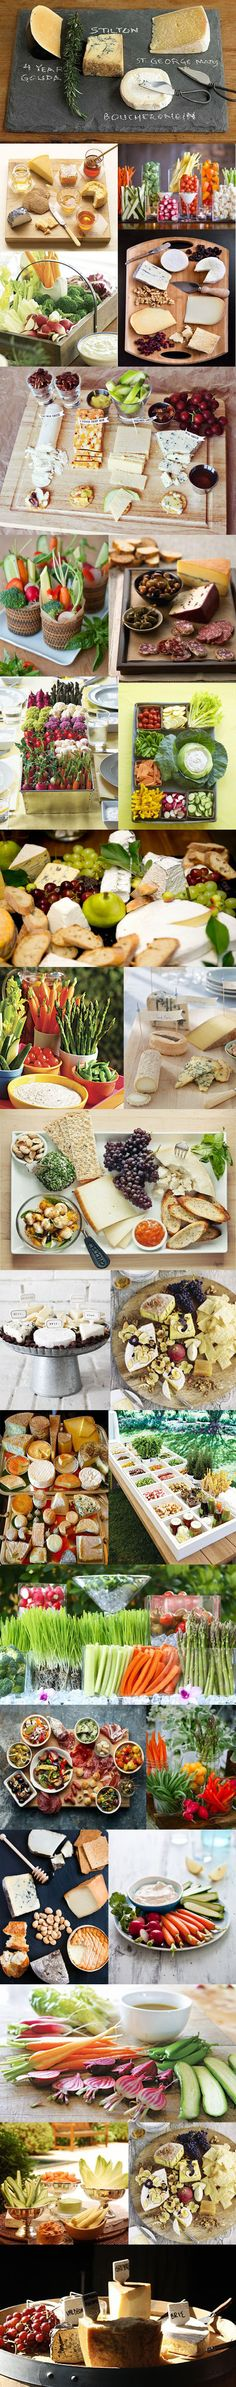 Appetizer Displays